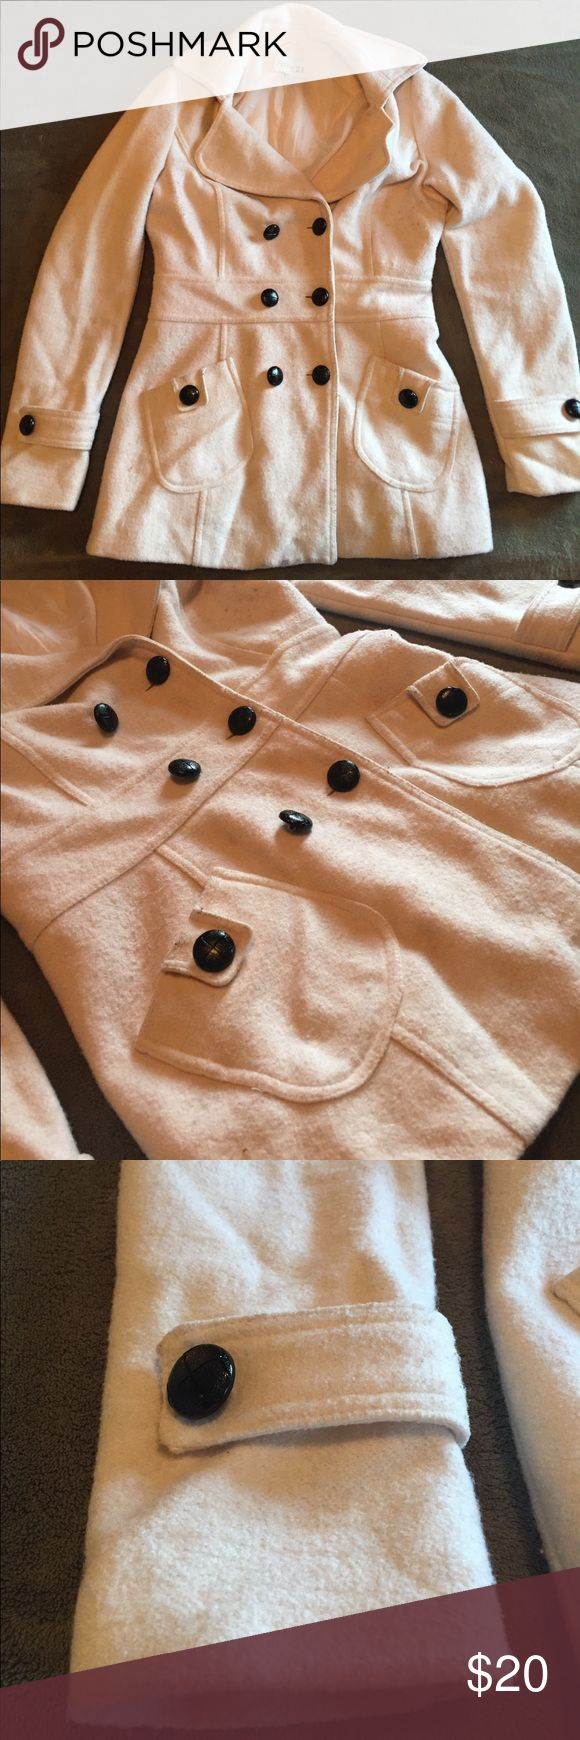 White wool pea coat Extremely nice part polyester/wool pea coat! Some wear shows since it is white, dry clean only. It will clean up perfectly. Get ready for winter! Forever 21 Jackets & Coats Pea Coats